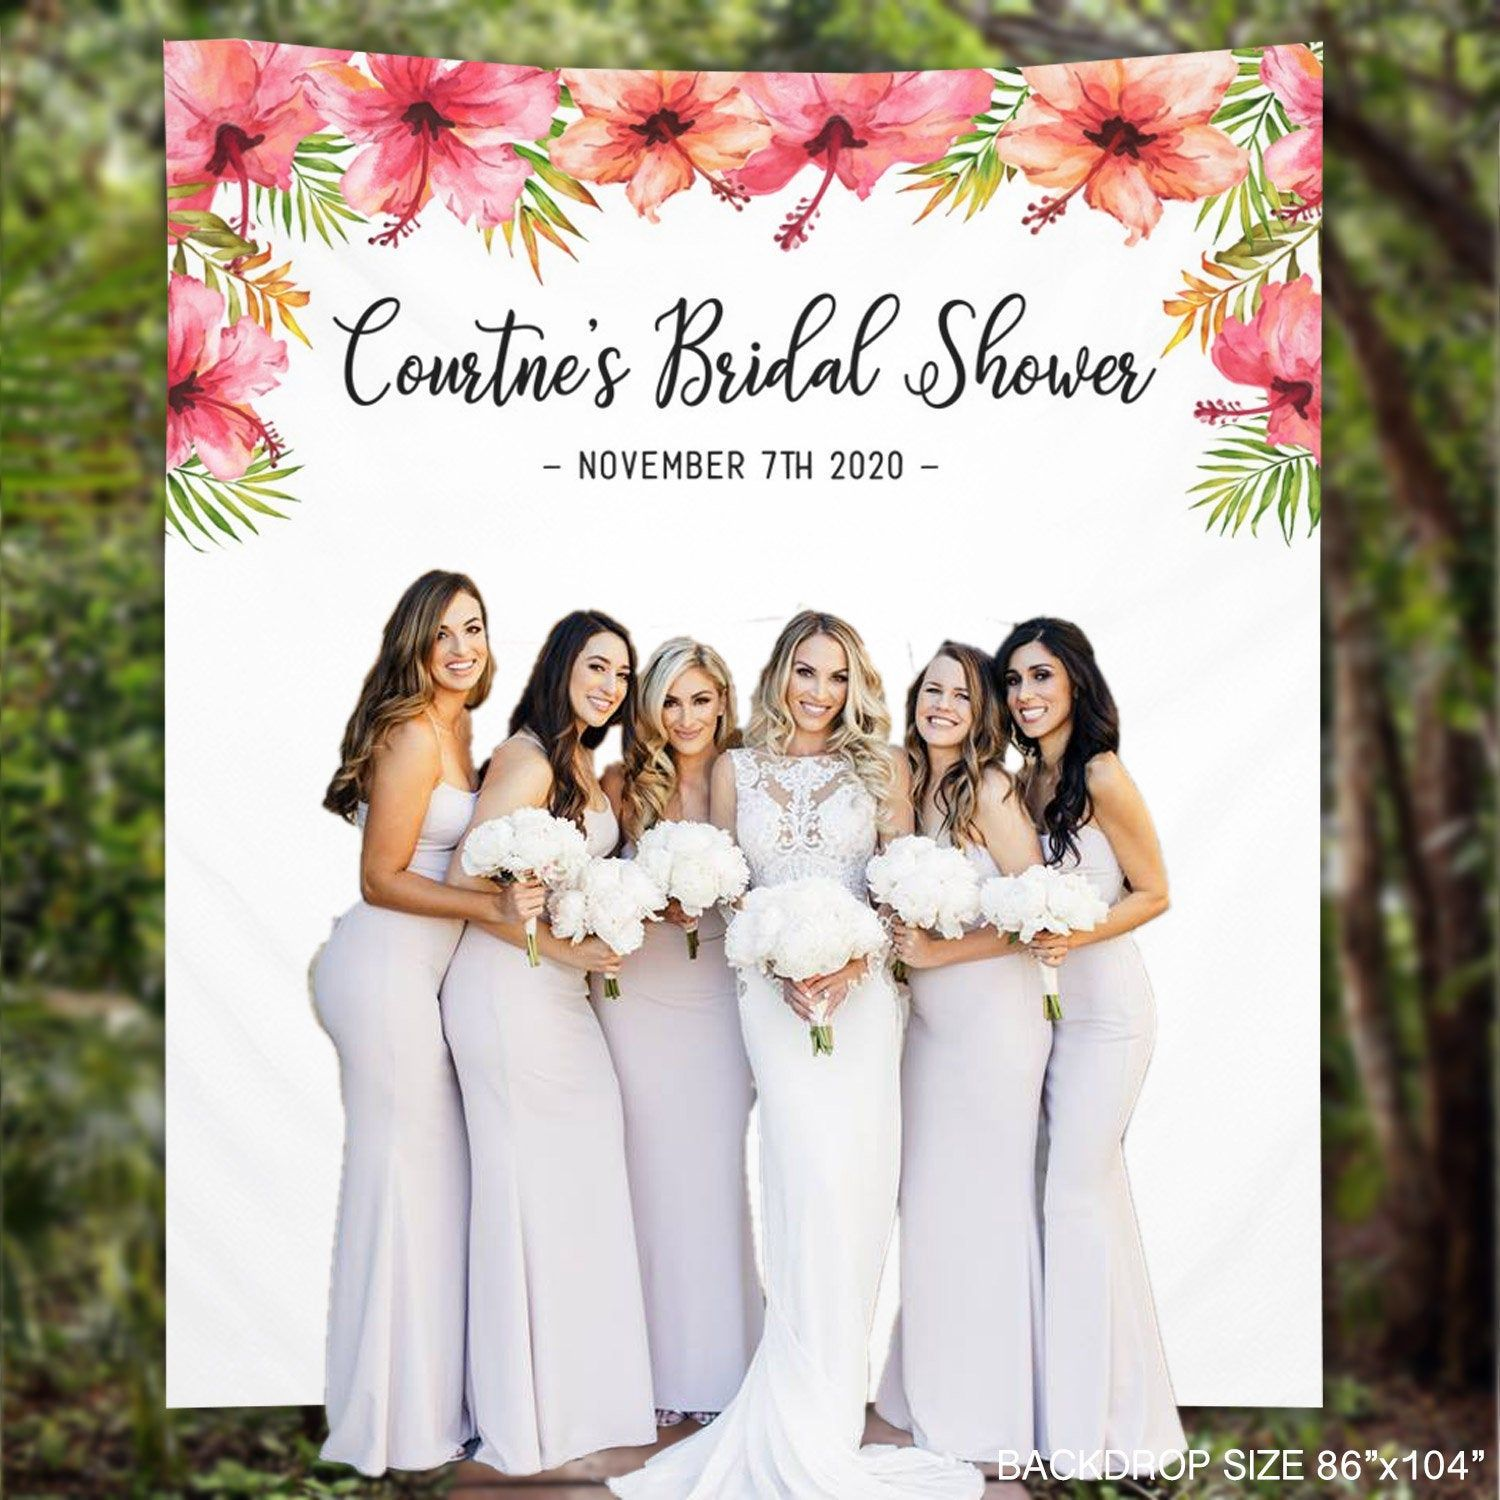 Sale 20 Bridal Shower Backdrop Hawaii Hibiscus Flowers Customize Banner Photo Booth Polaroid Pro Bridal Shower Backdrop Bridal Shower Photos Booth Wedding